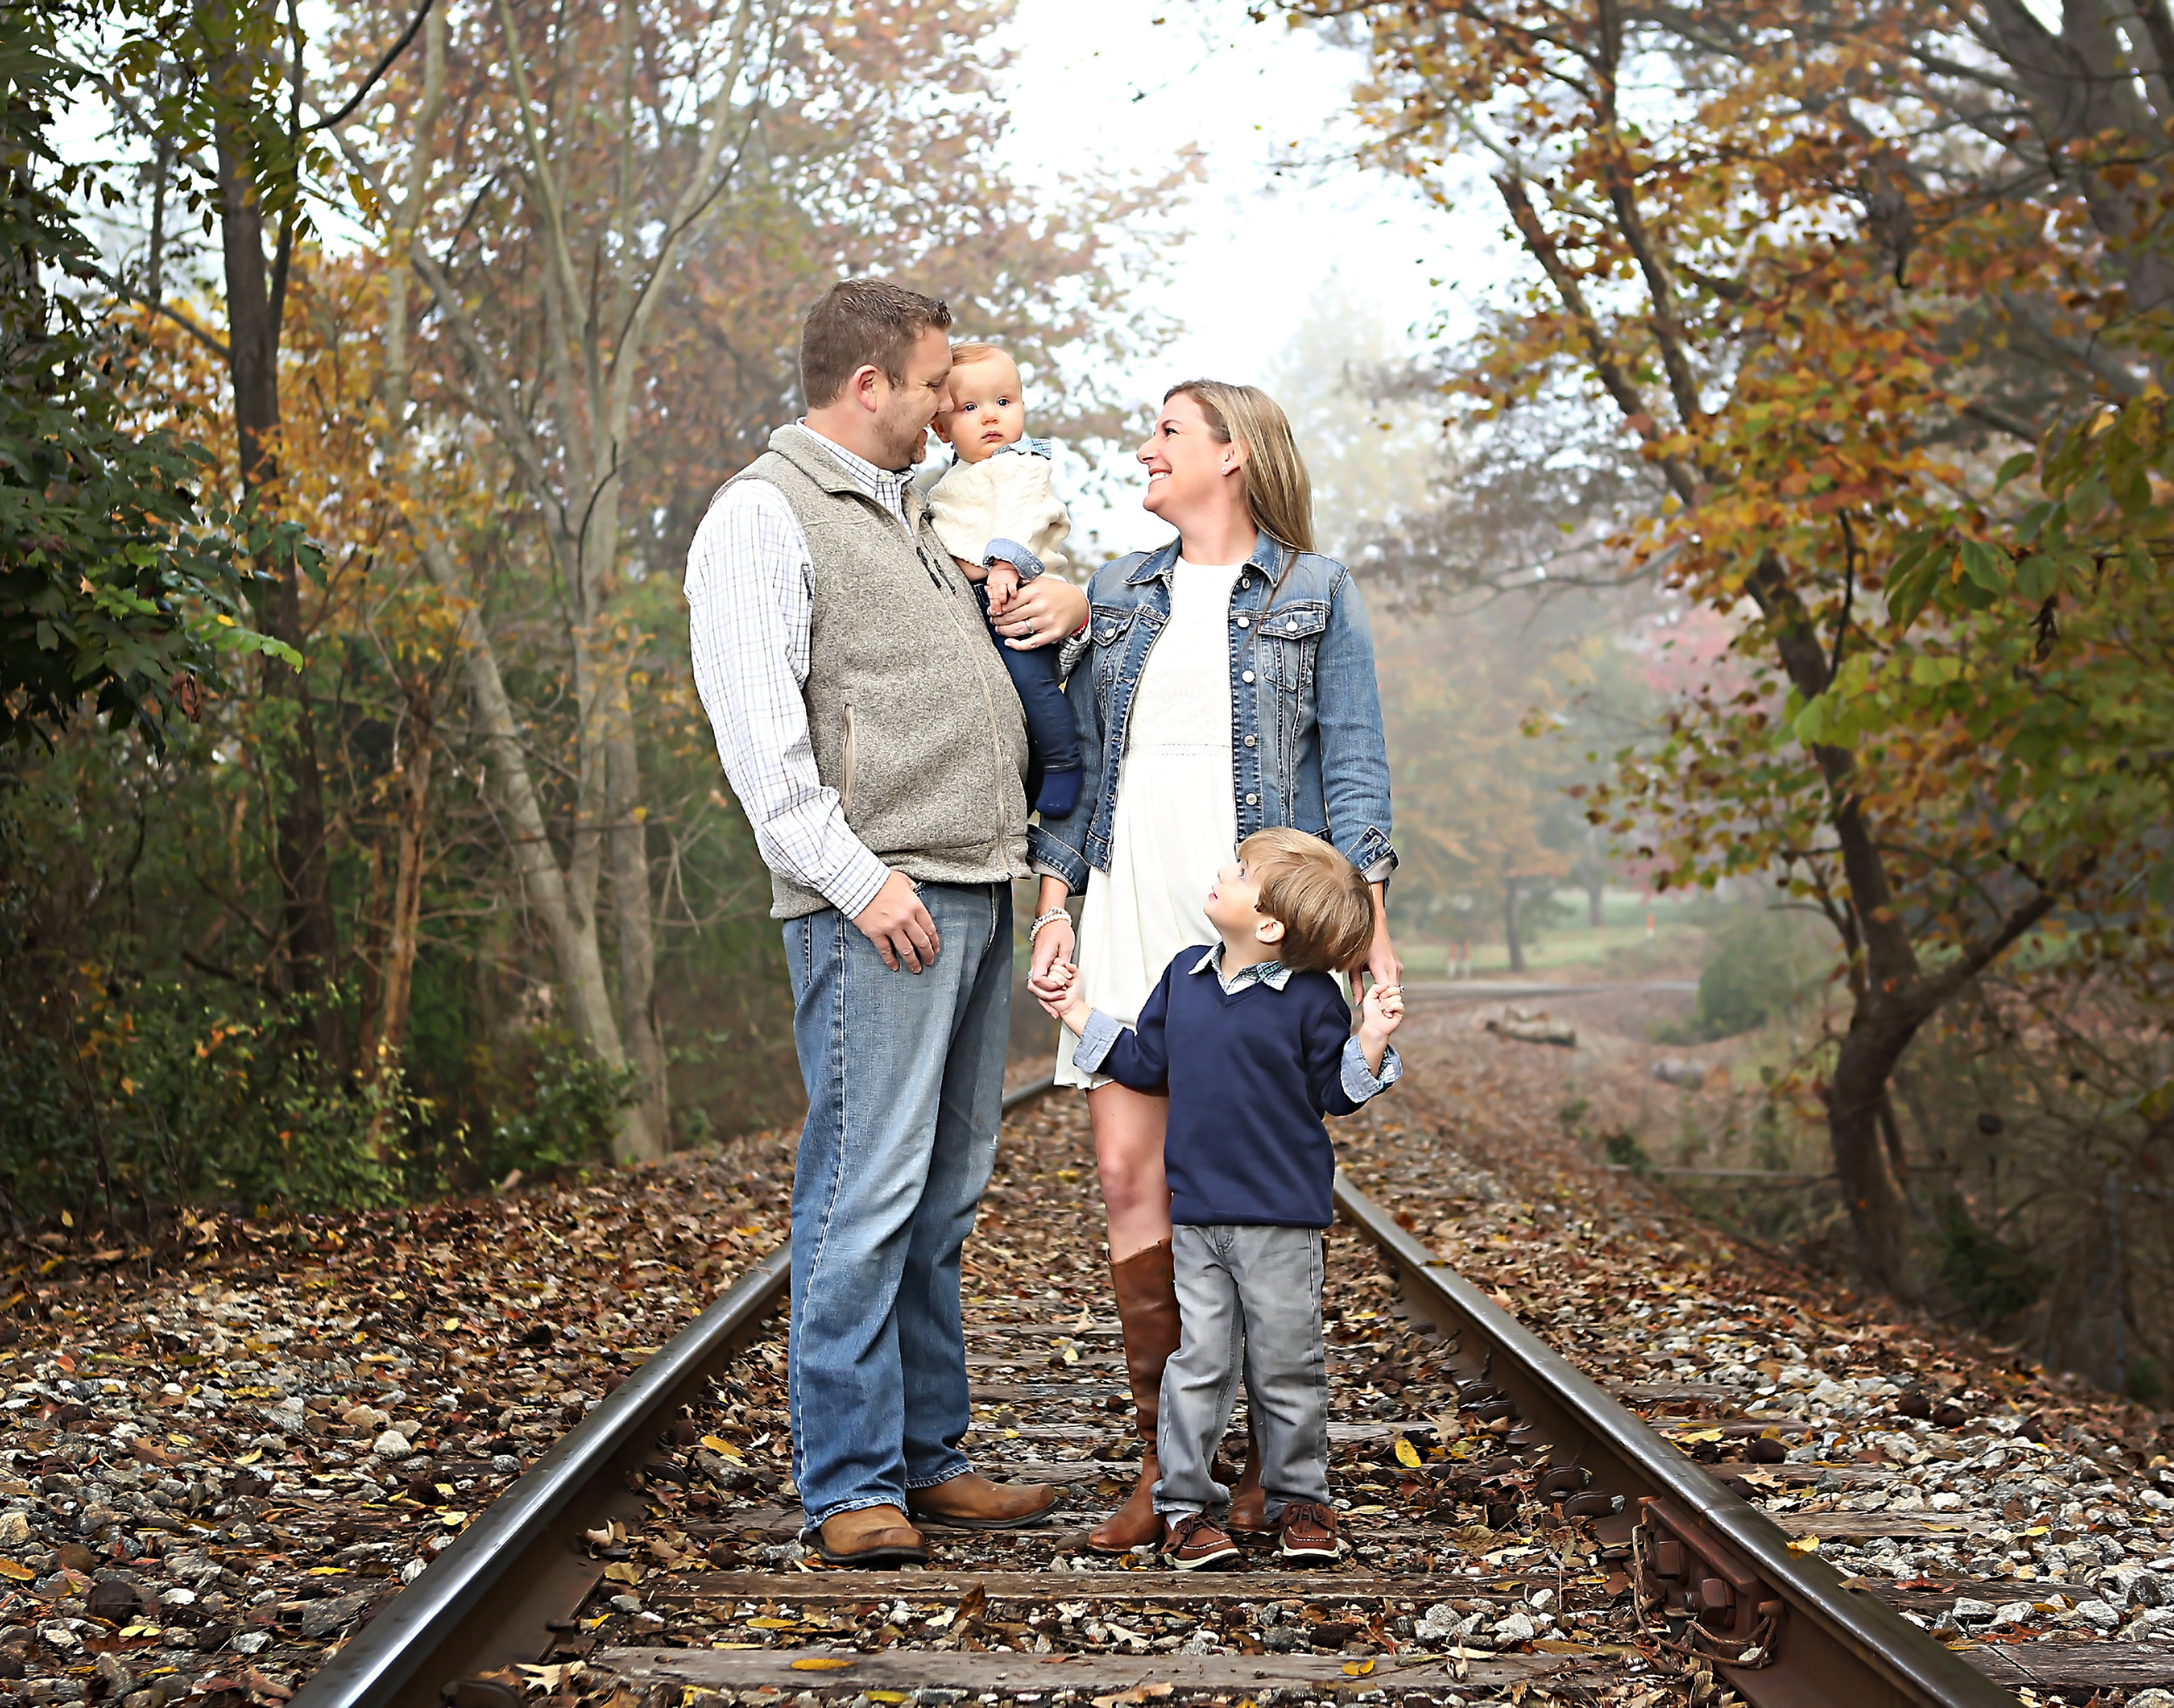 The fall season is an extremely popular time to have your family photographed, and we look forward to this season every year.  However, when the fabulous Pagel family came for their annual family portrait, something was different.  Their session was first thing in the morning.  The air was cool, and there was still some fog lingering from the rain the night before.  The result was a dreamy, almost painterly effect on the whole scene.